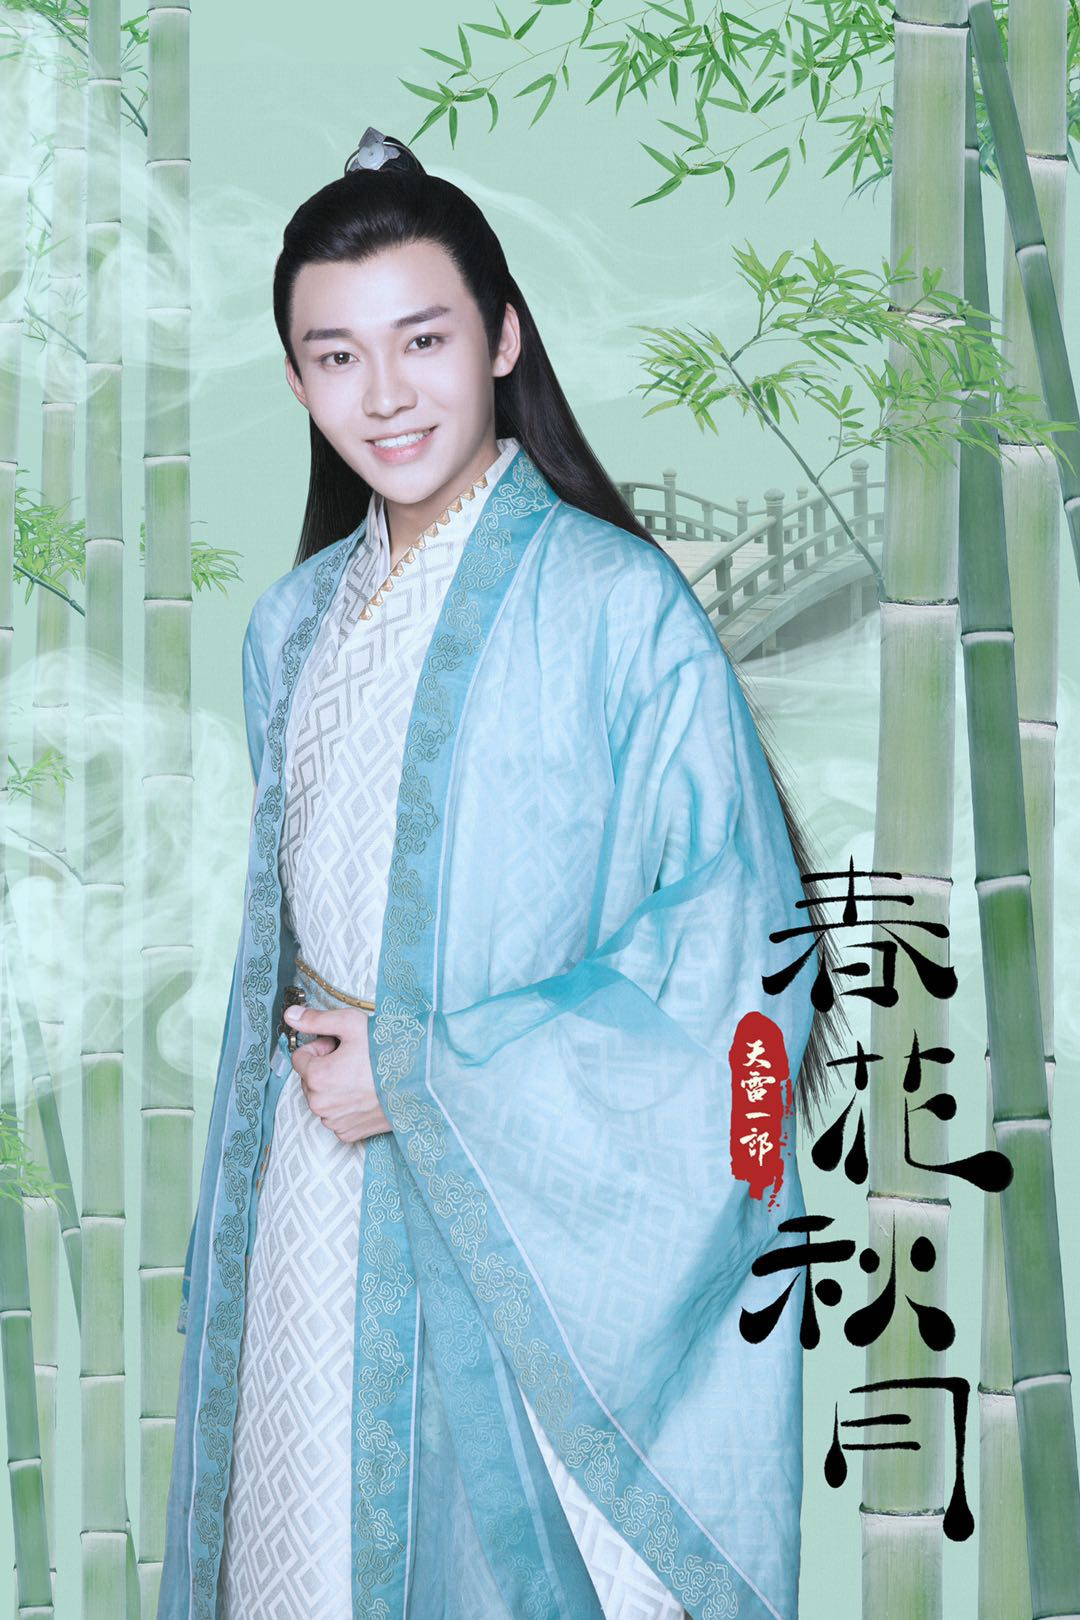 liu yifei 潼《 tianlei a part of the spring flower autumn month 》今日开播 秦流风上线开撩